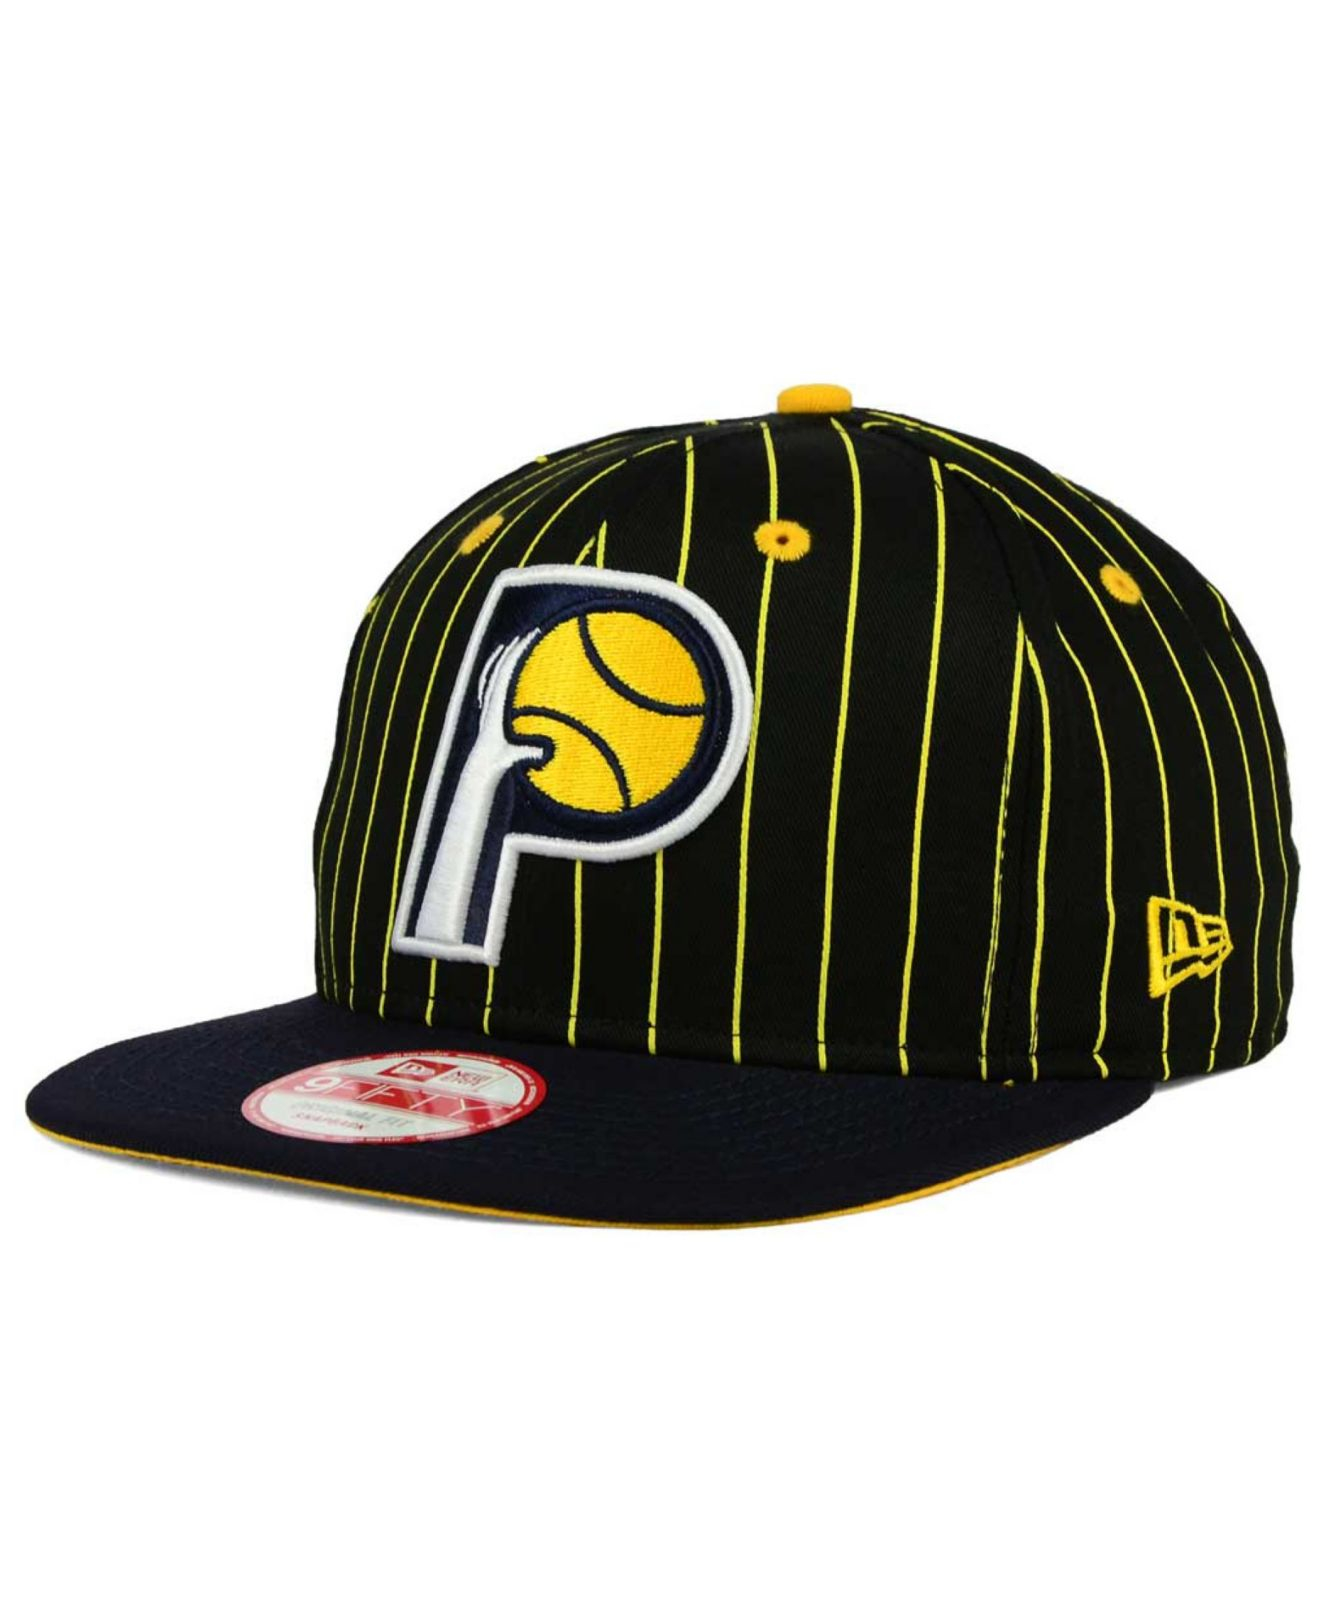 new style fcc94 a575d KTZ Indiana Pacers Vintage Pinstripe 9fifty Snapback Cap in Black ...